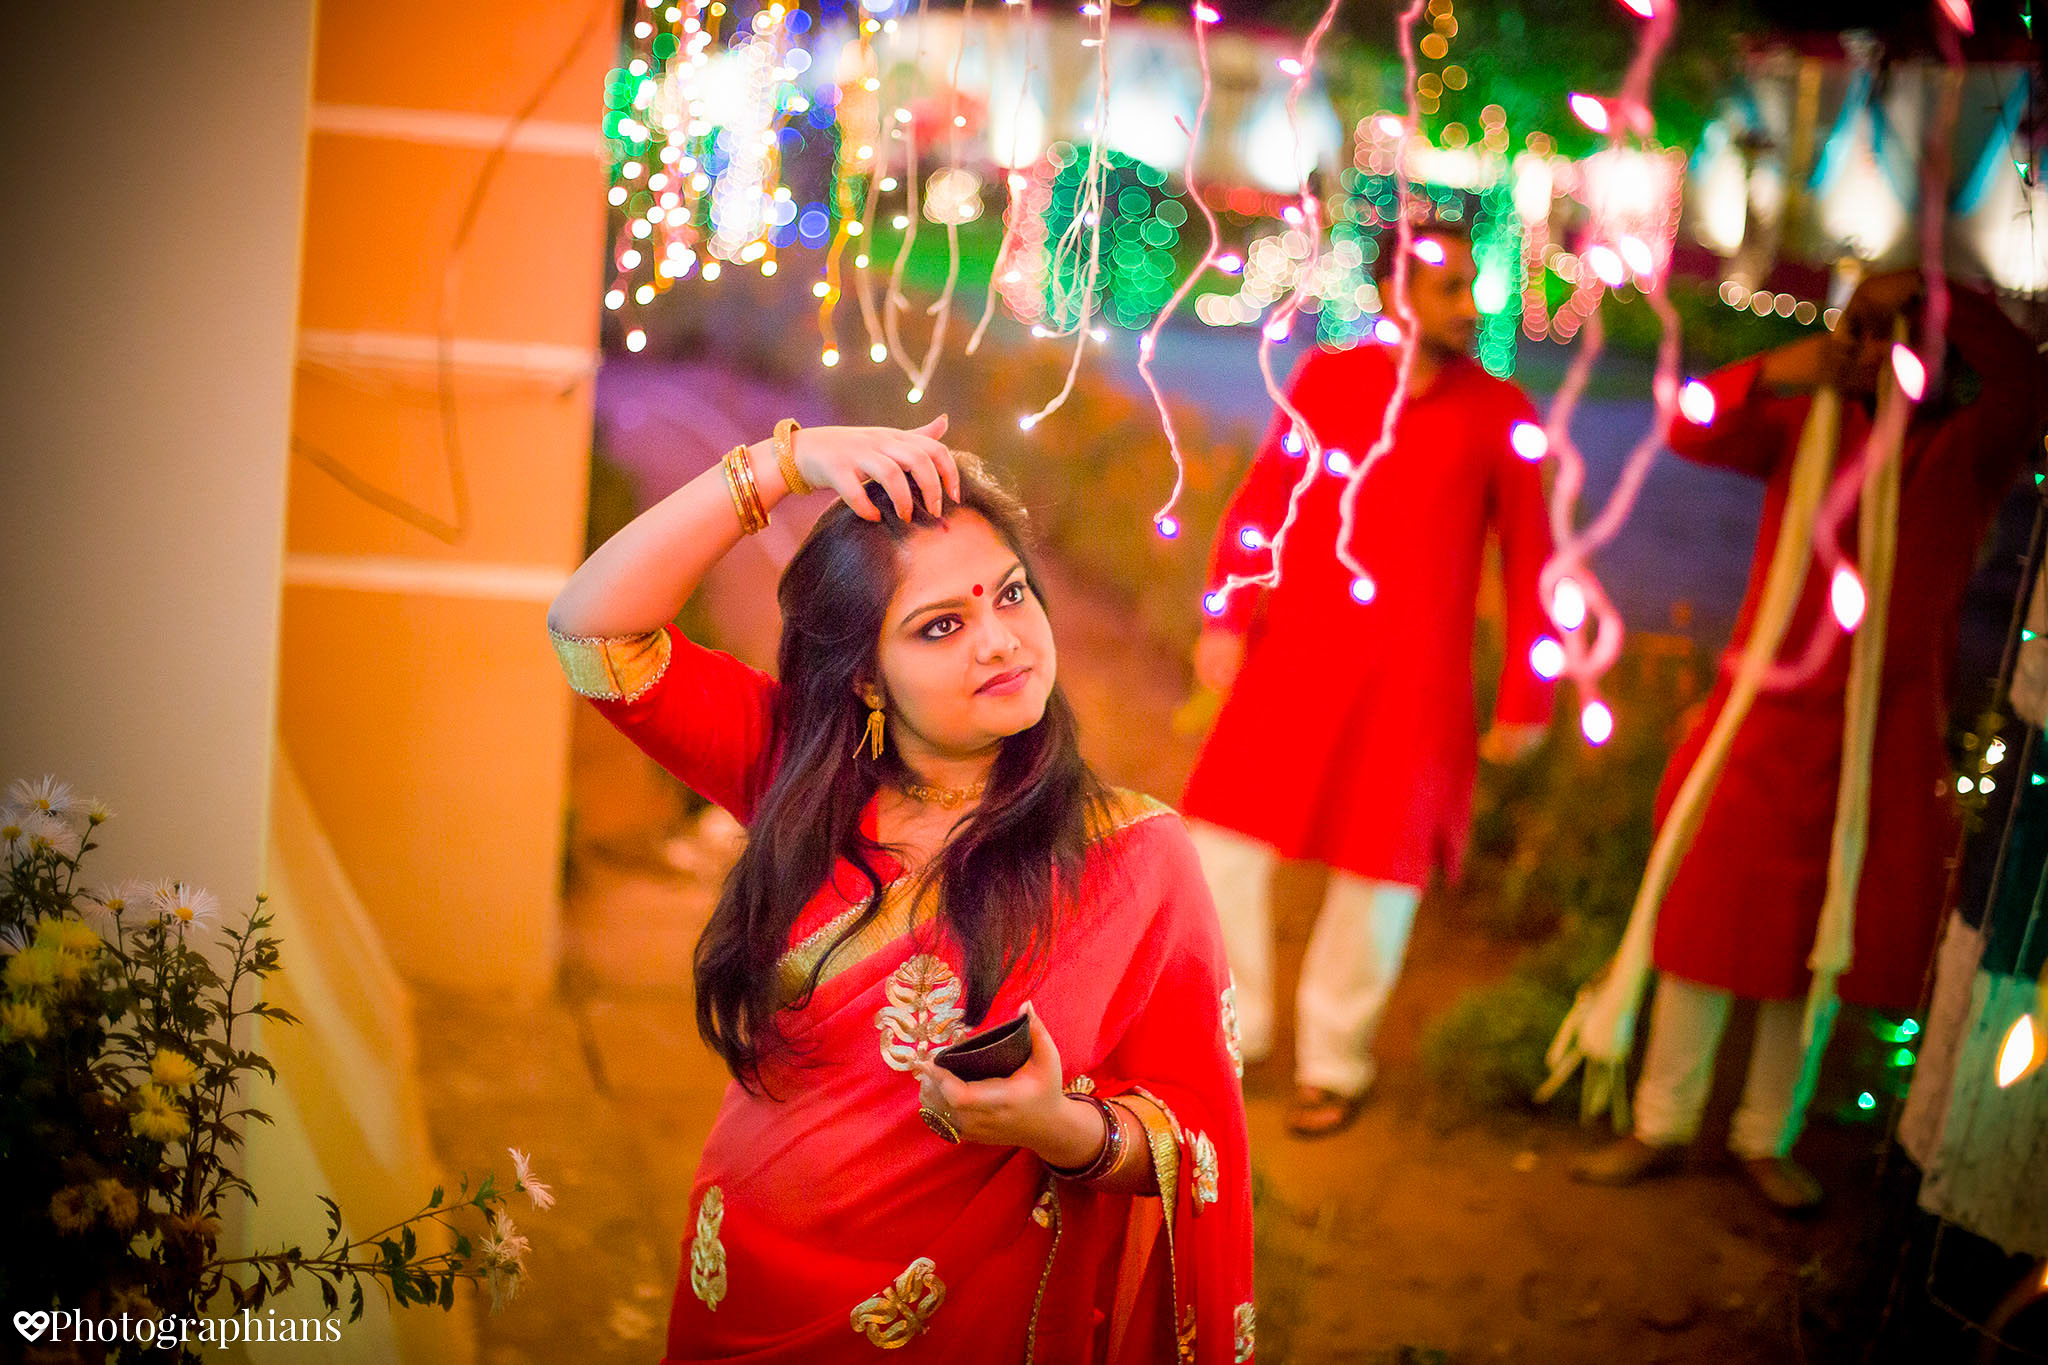 Photographians_Indian_Wedding_Durgapur_047